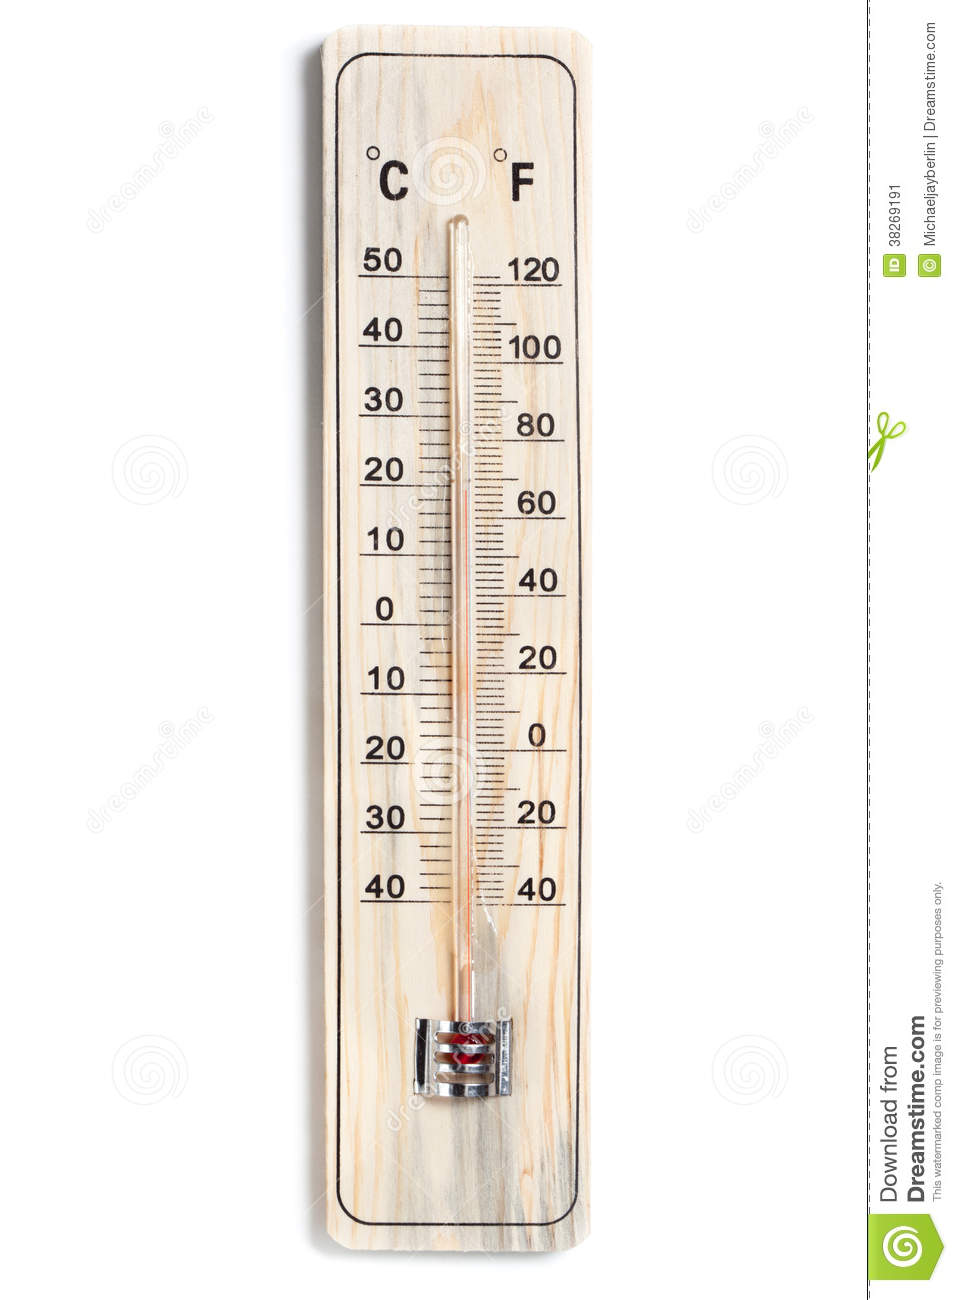 dual celsius fahrenheit scale thermometer stock image image of